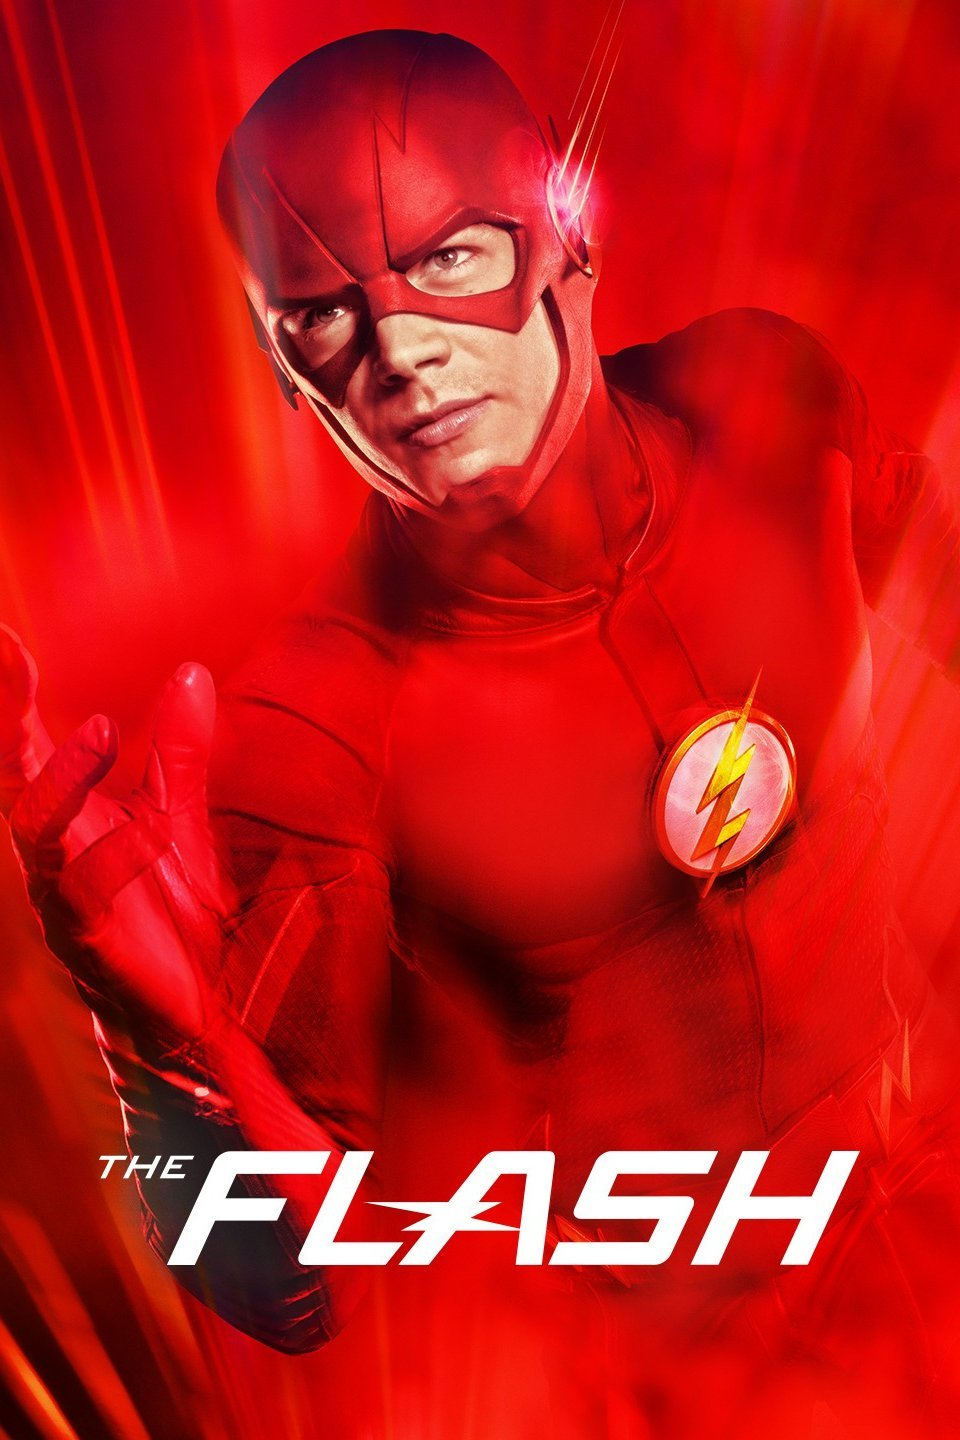 The Flash Season 4 Episode 1 Download HDTV Online